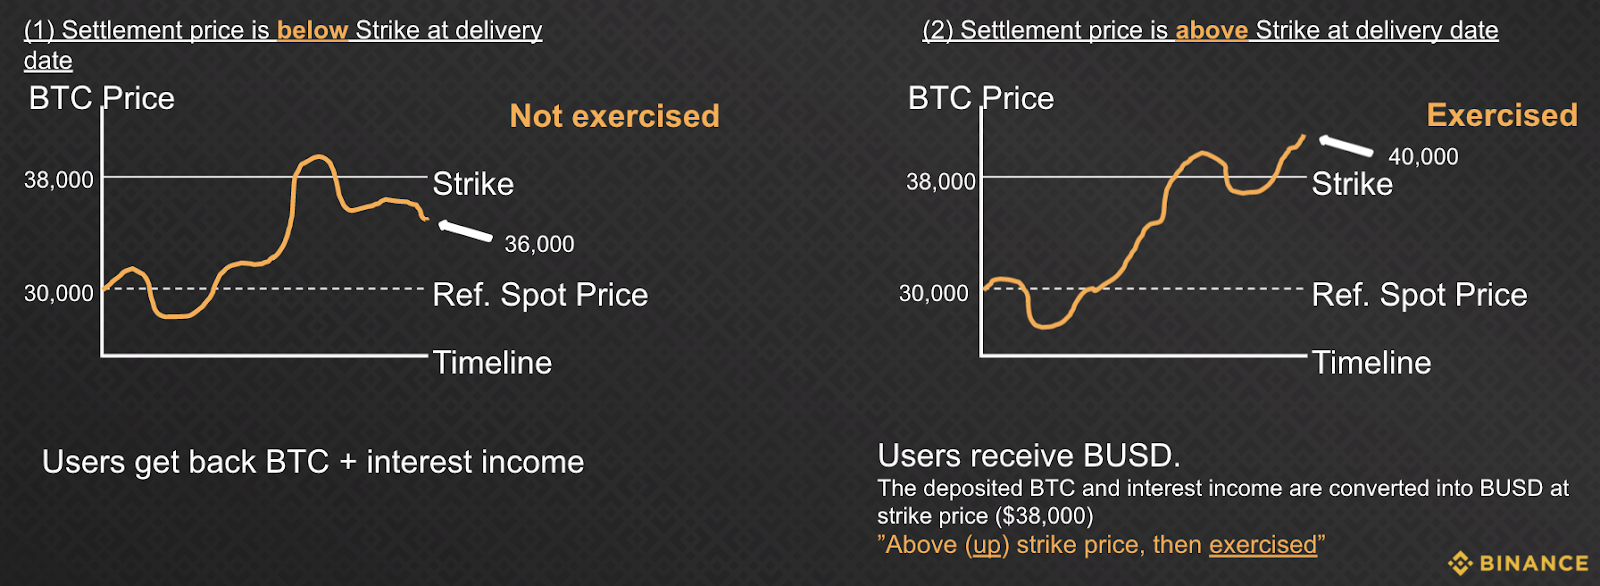 Binance Dual Investment up-and-exercised chart